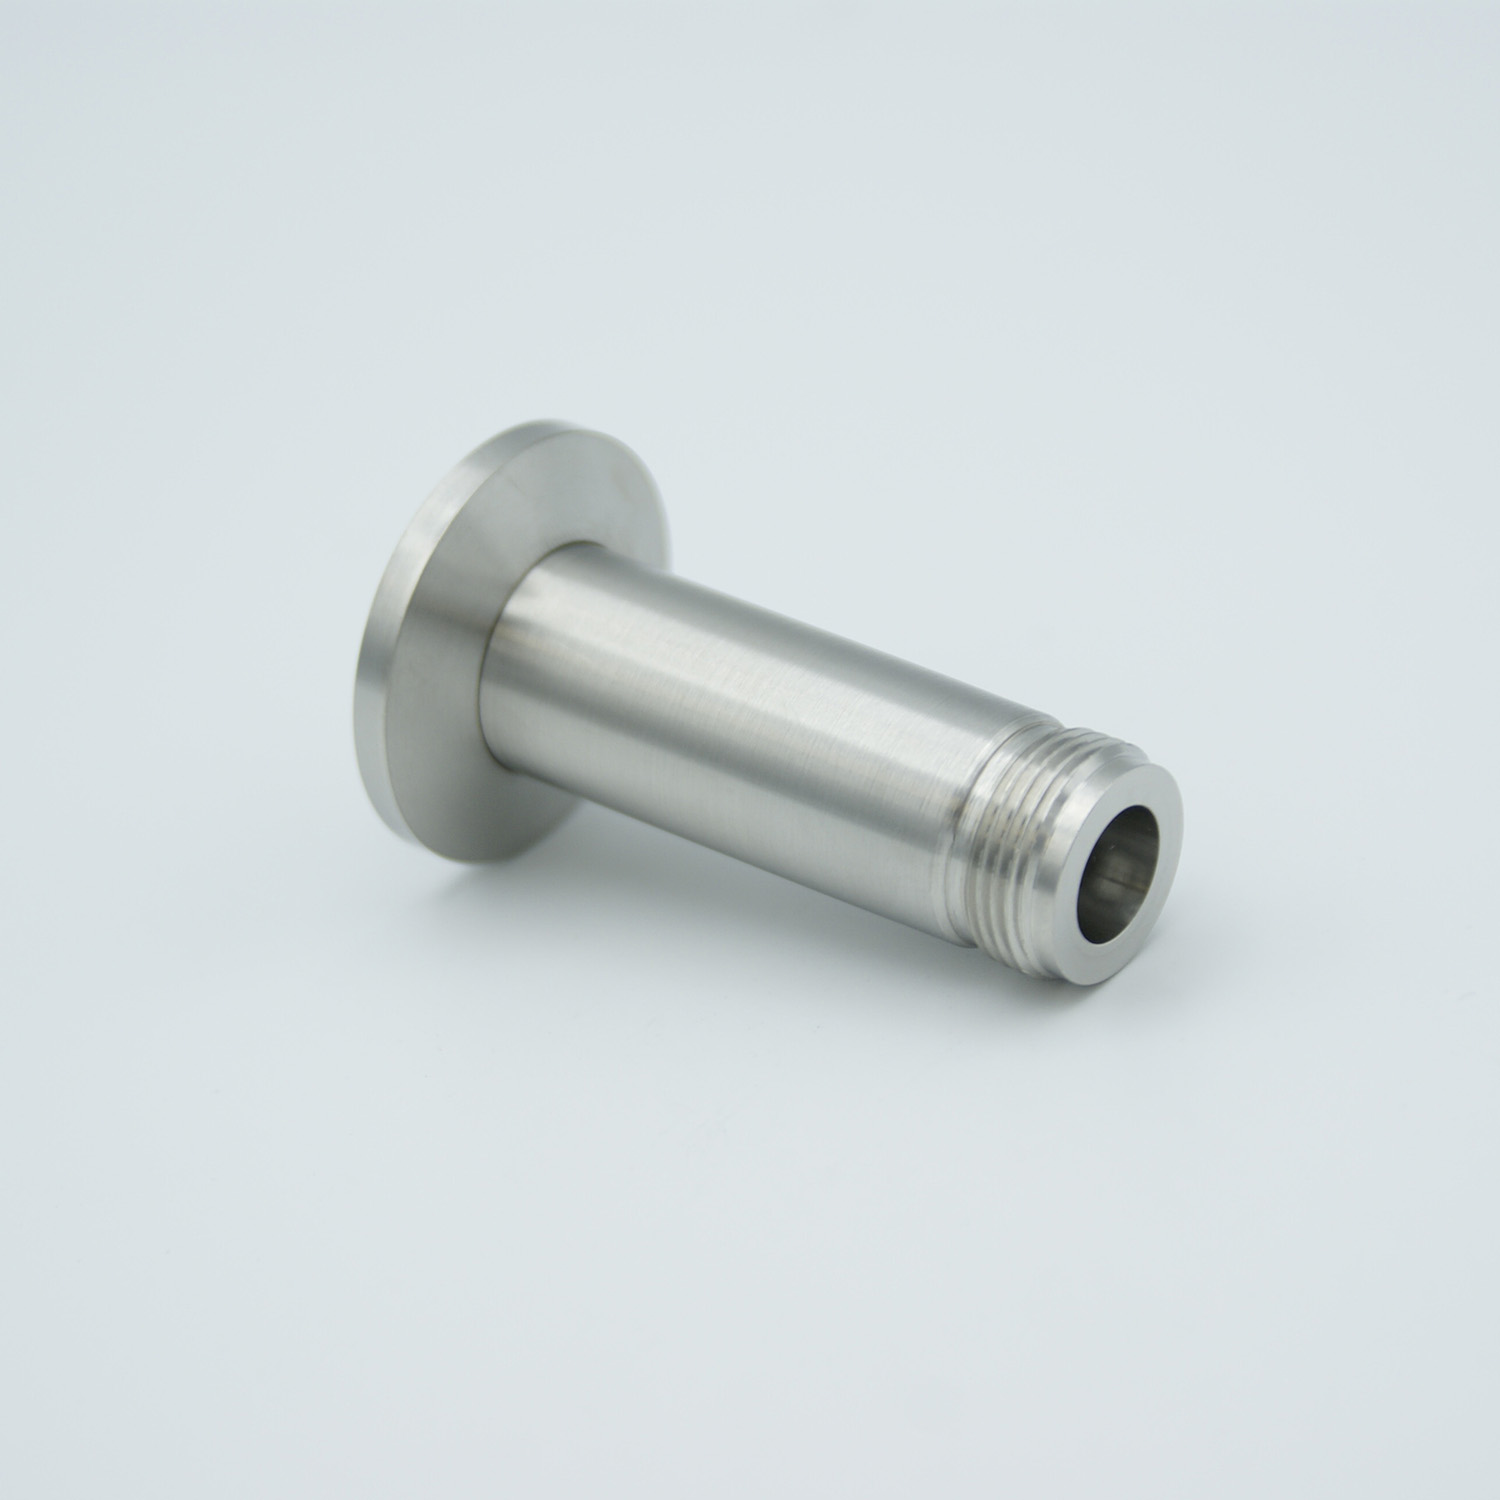 Type-N feedthrough single ended 500VDC, / 3 Amp, air side connector included DN40KF flange